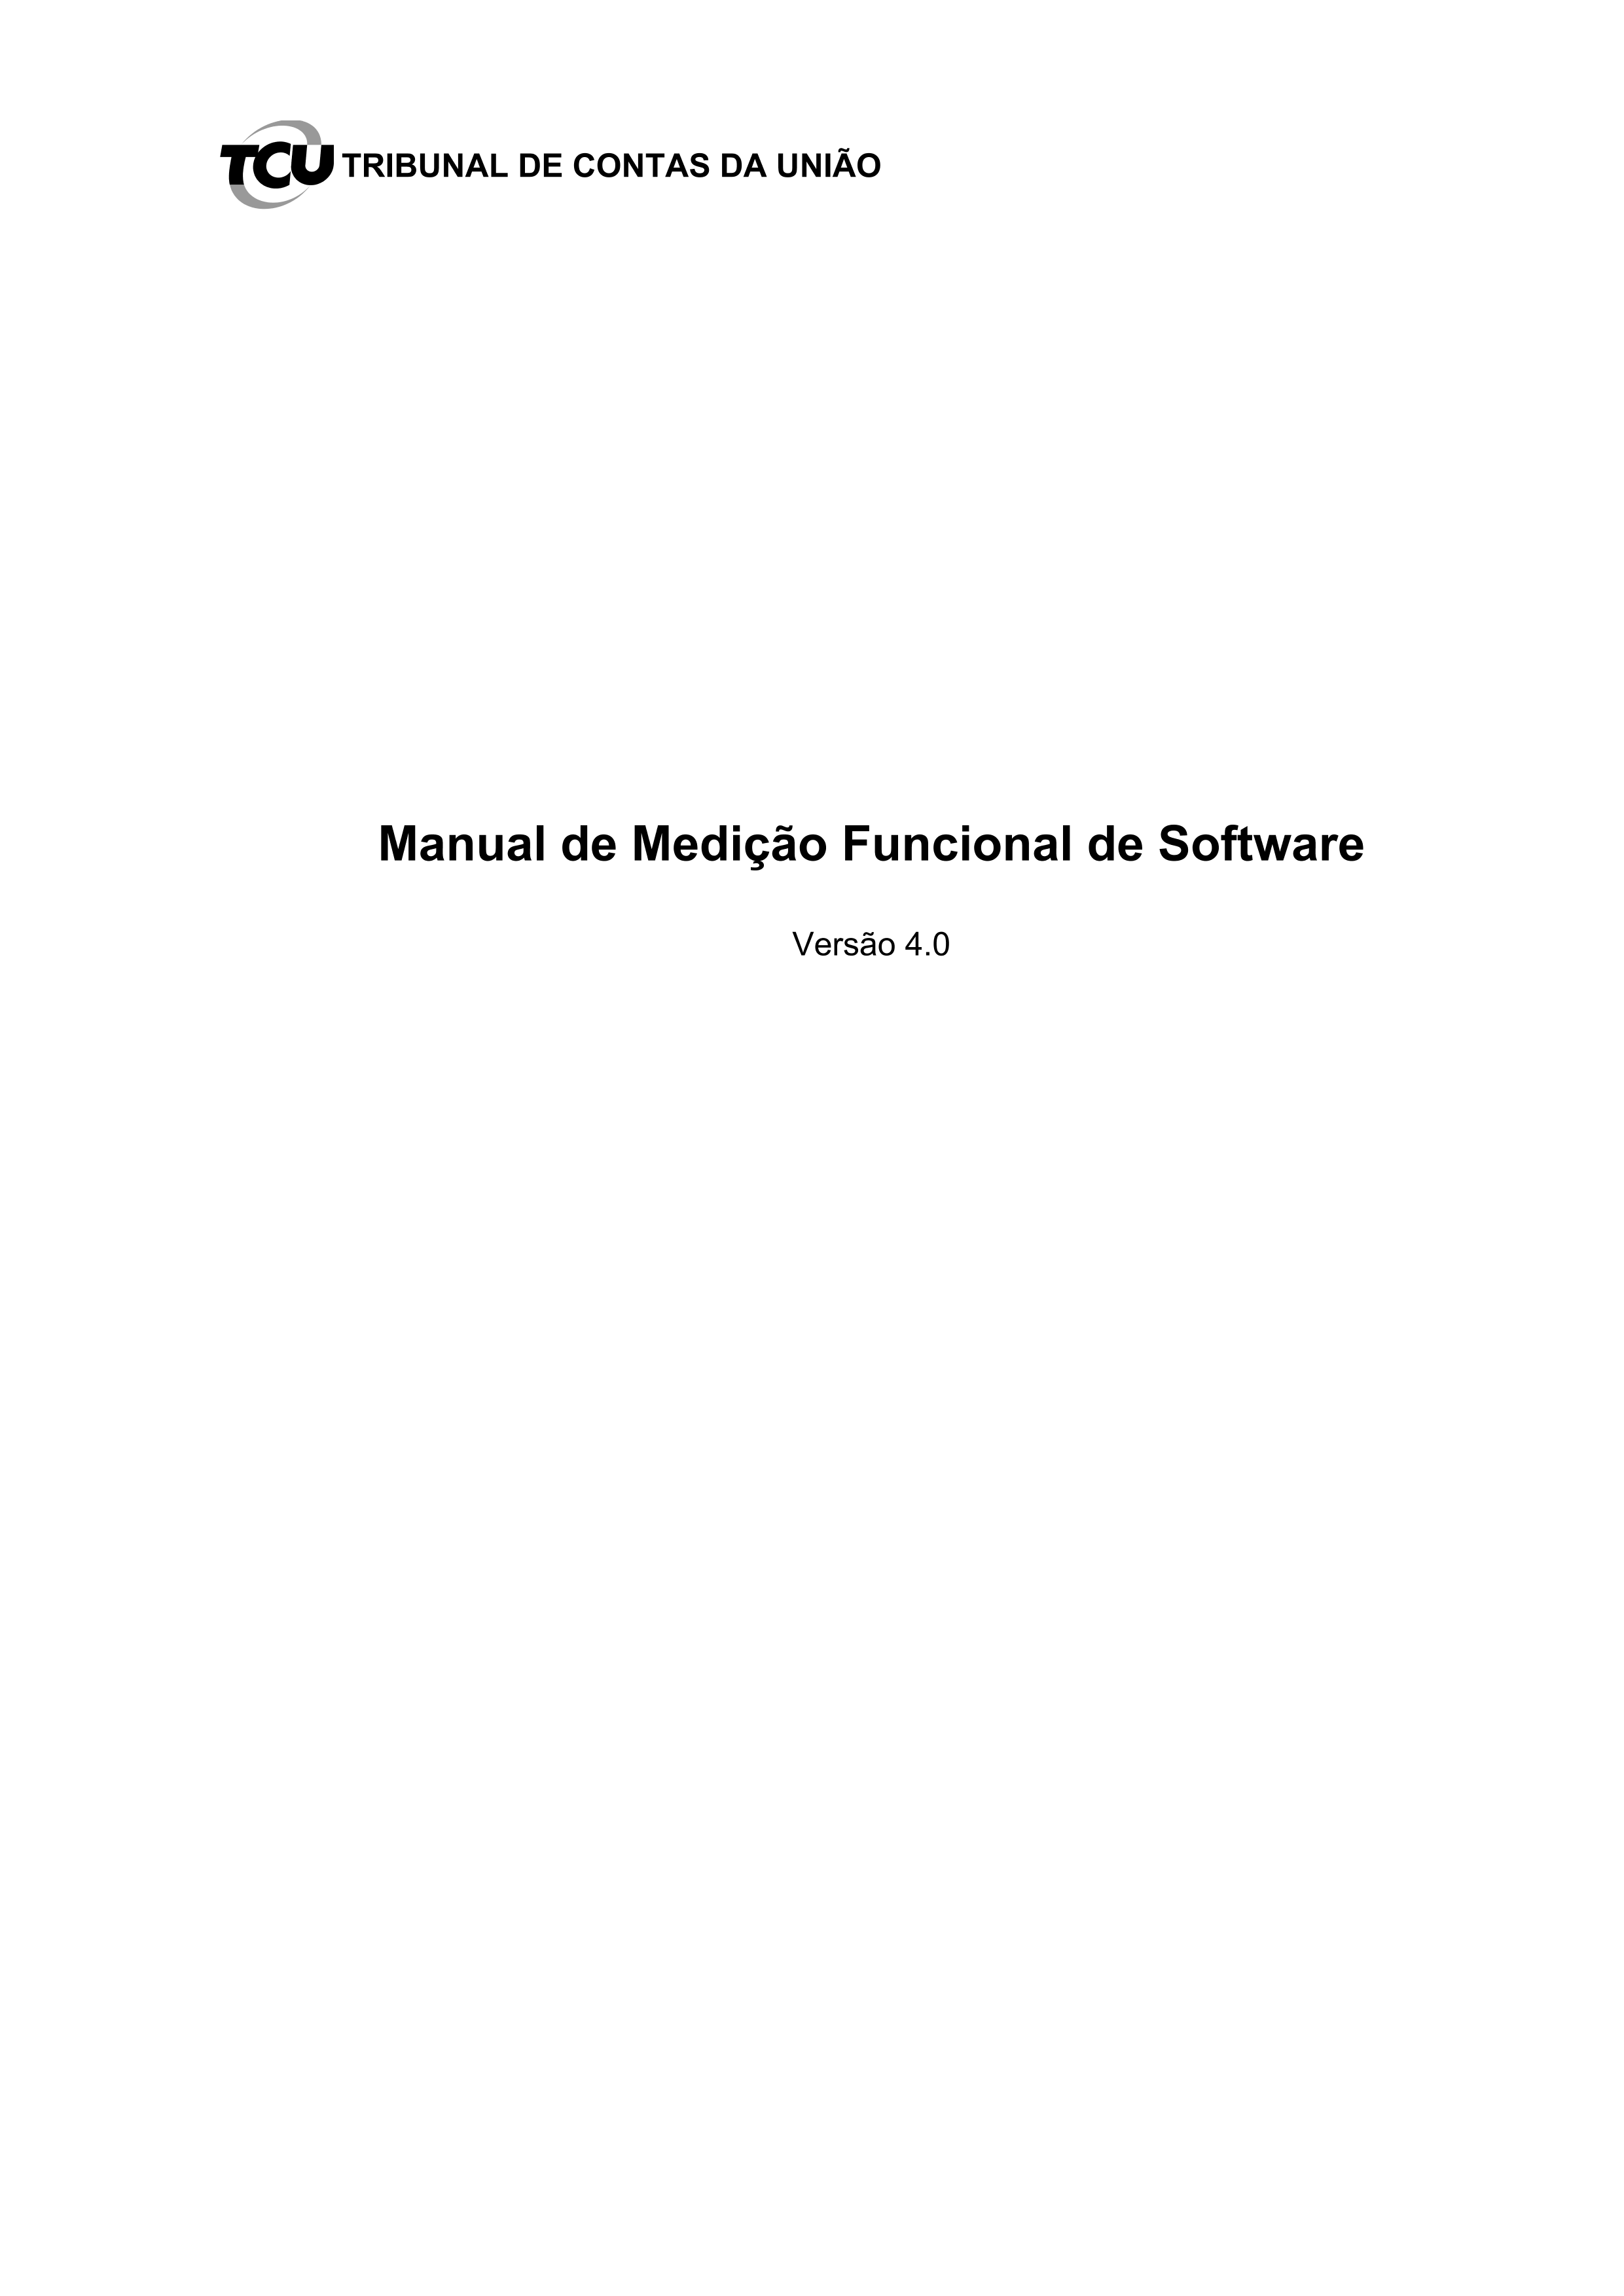 manual de medicao funcional de software _7_.png